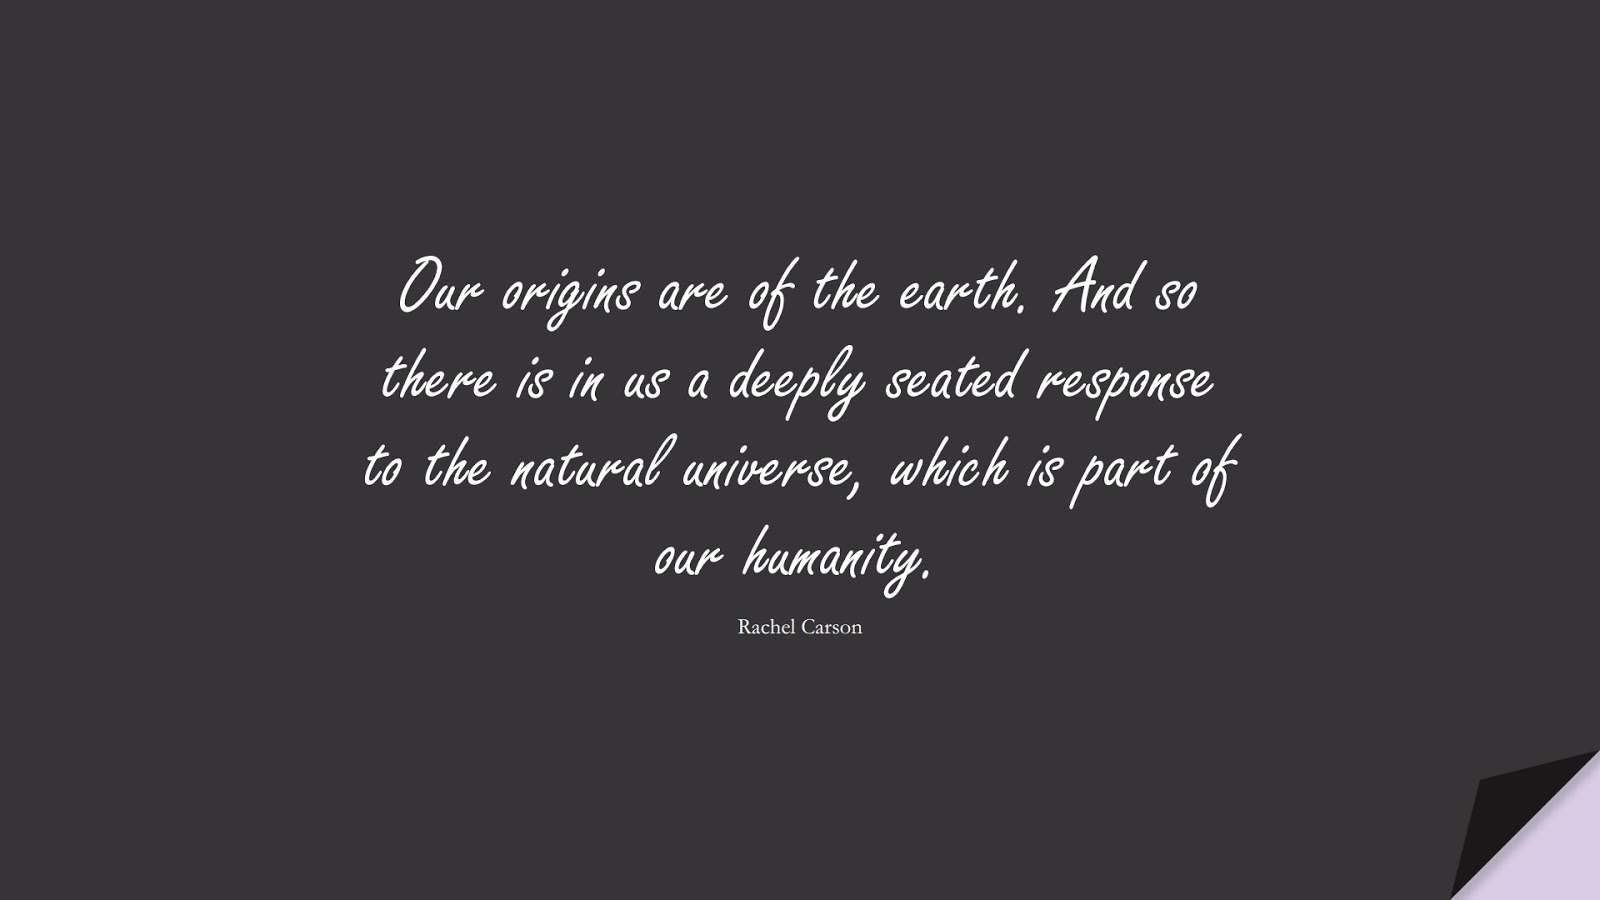 Our origins are of the earth. And so there is in us a deeply seated response to the natural universe, which is part of our humanity. (Rachel Carson);  #HumanityQuotes